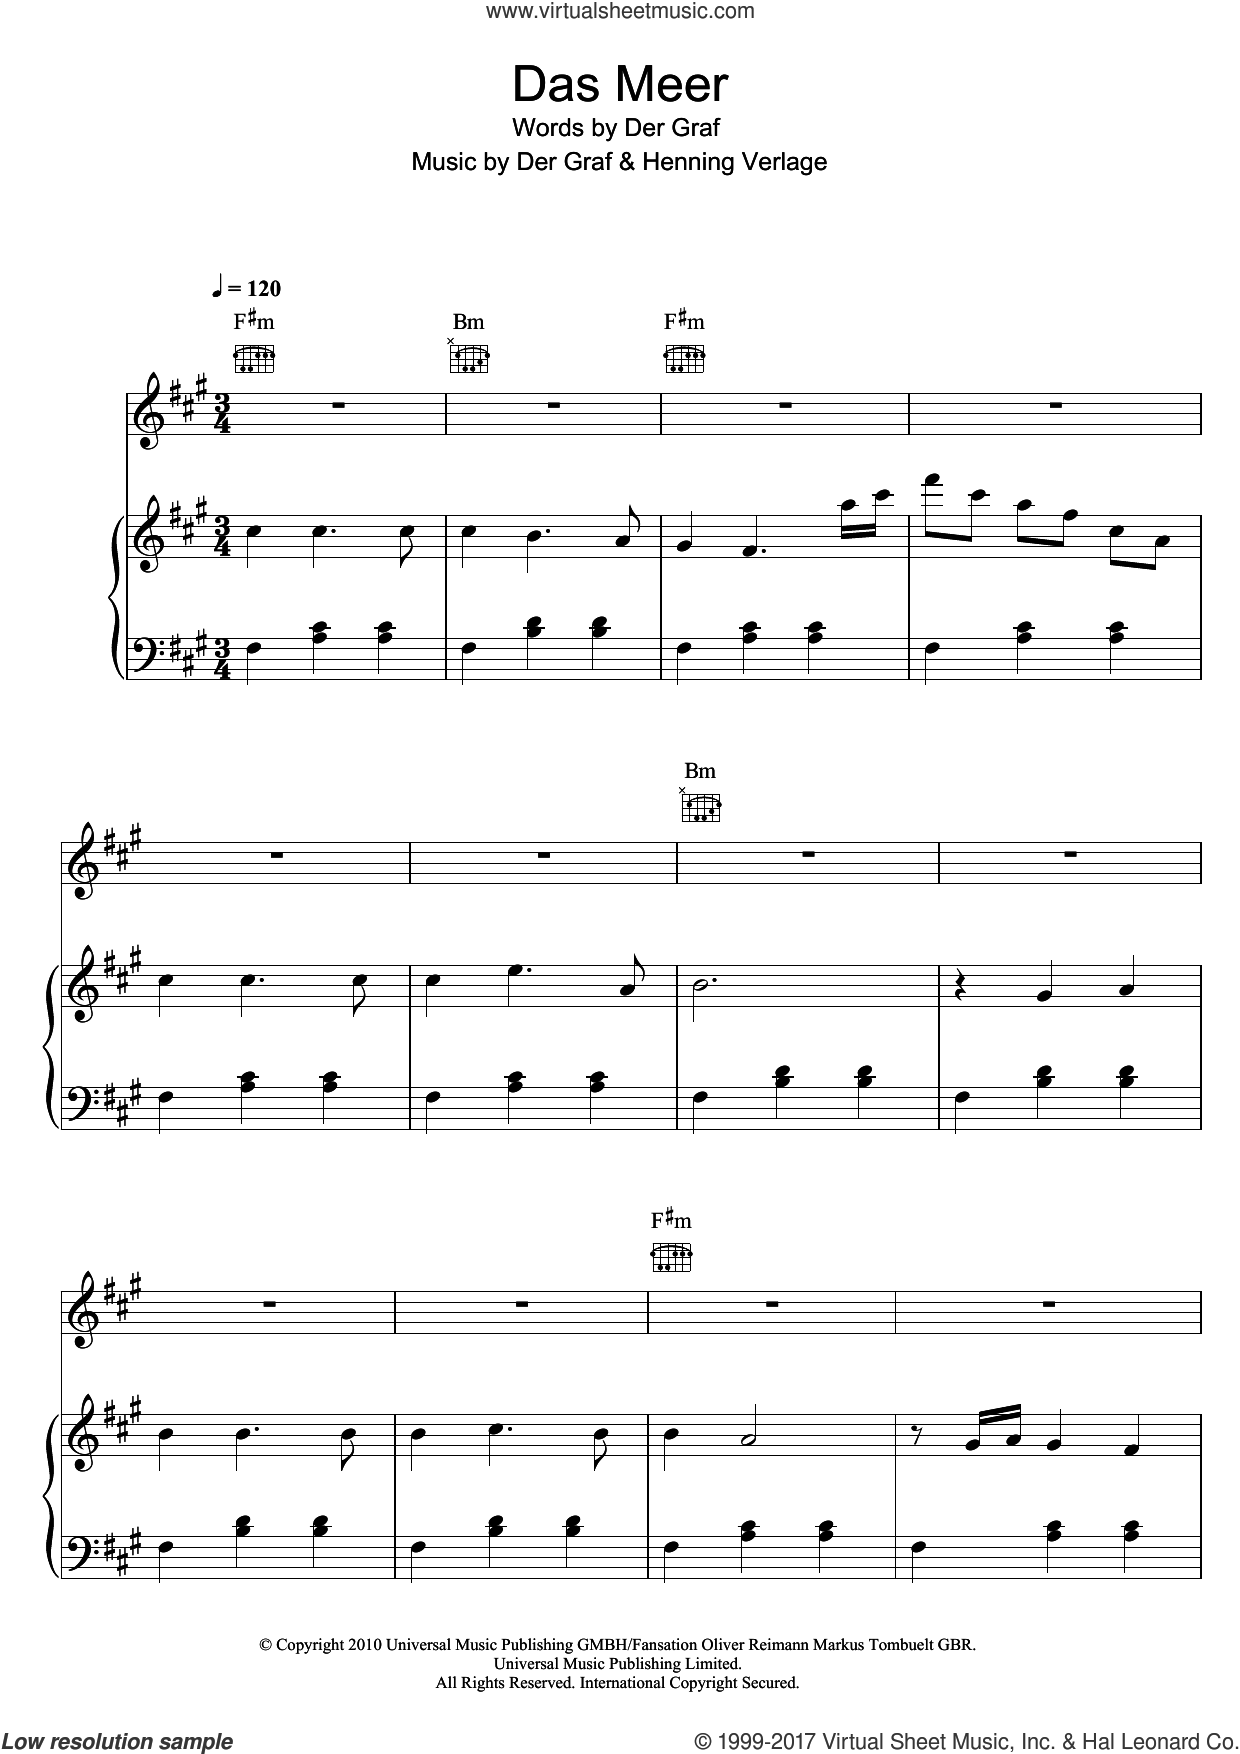 Das Meer sheet music for voice, piano or guitar by Unheilig, Der Graf and Henning Verlage, intermediate skill level